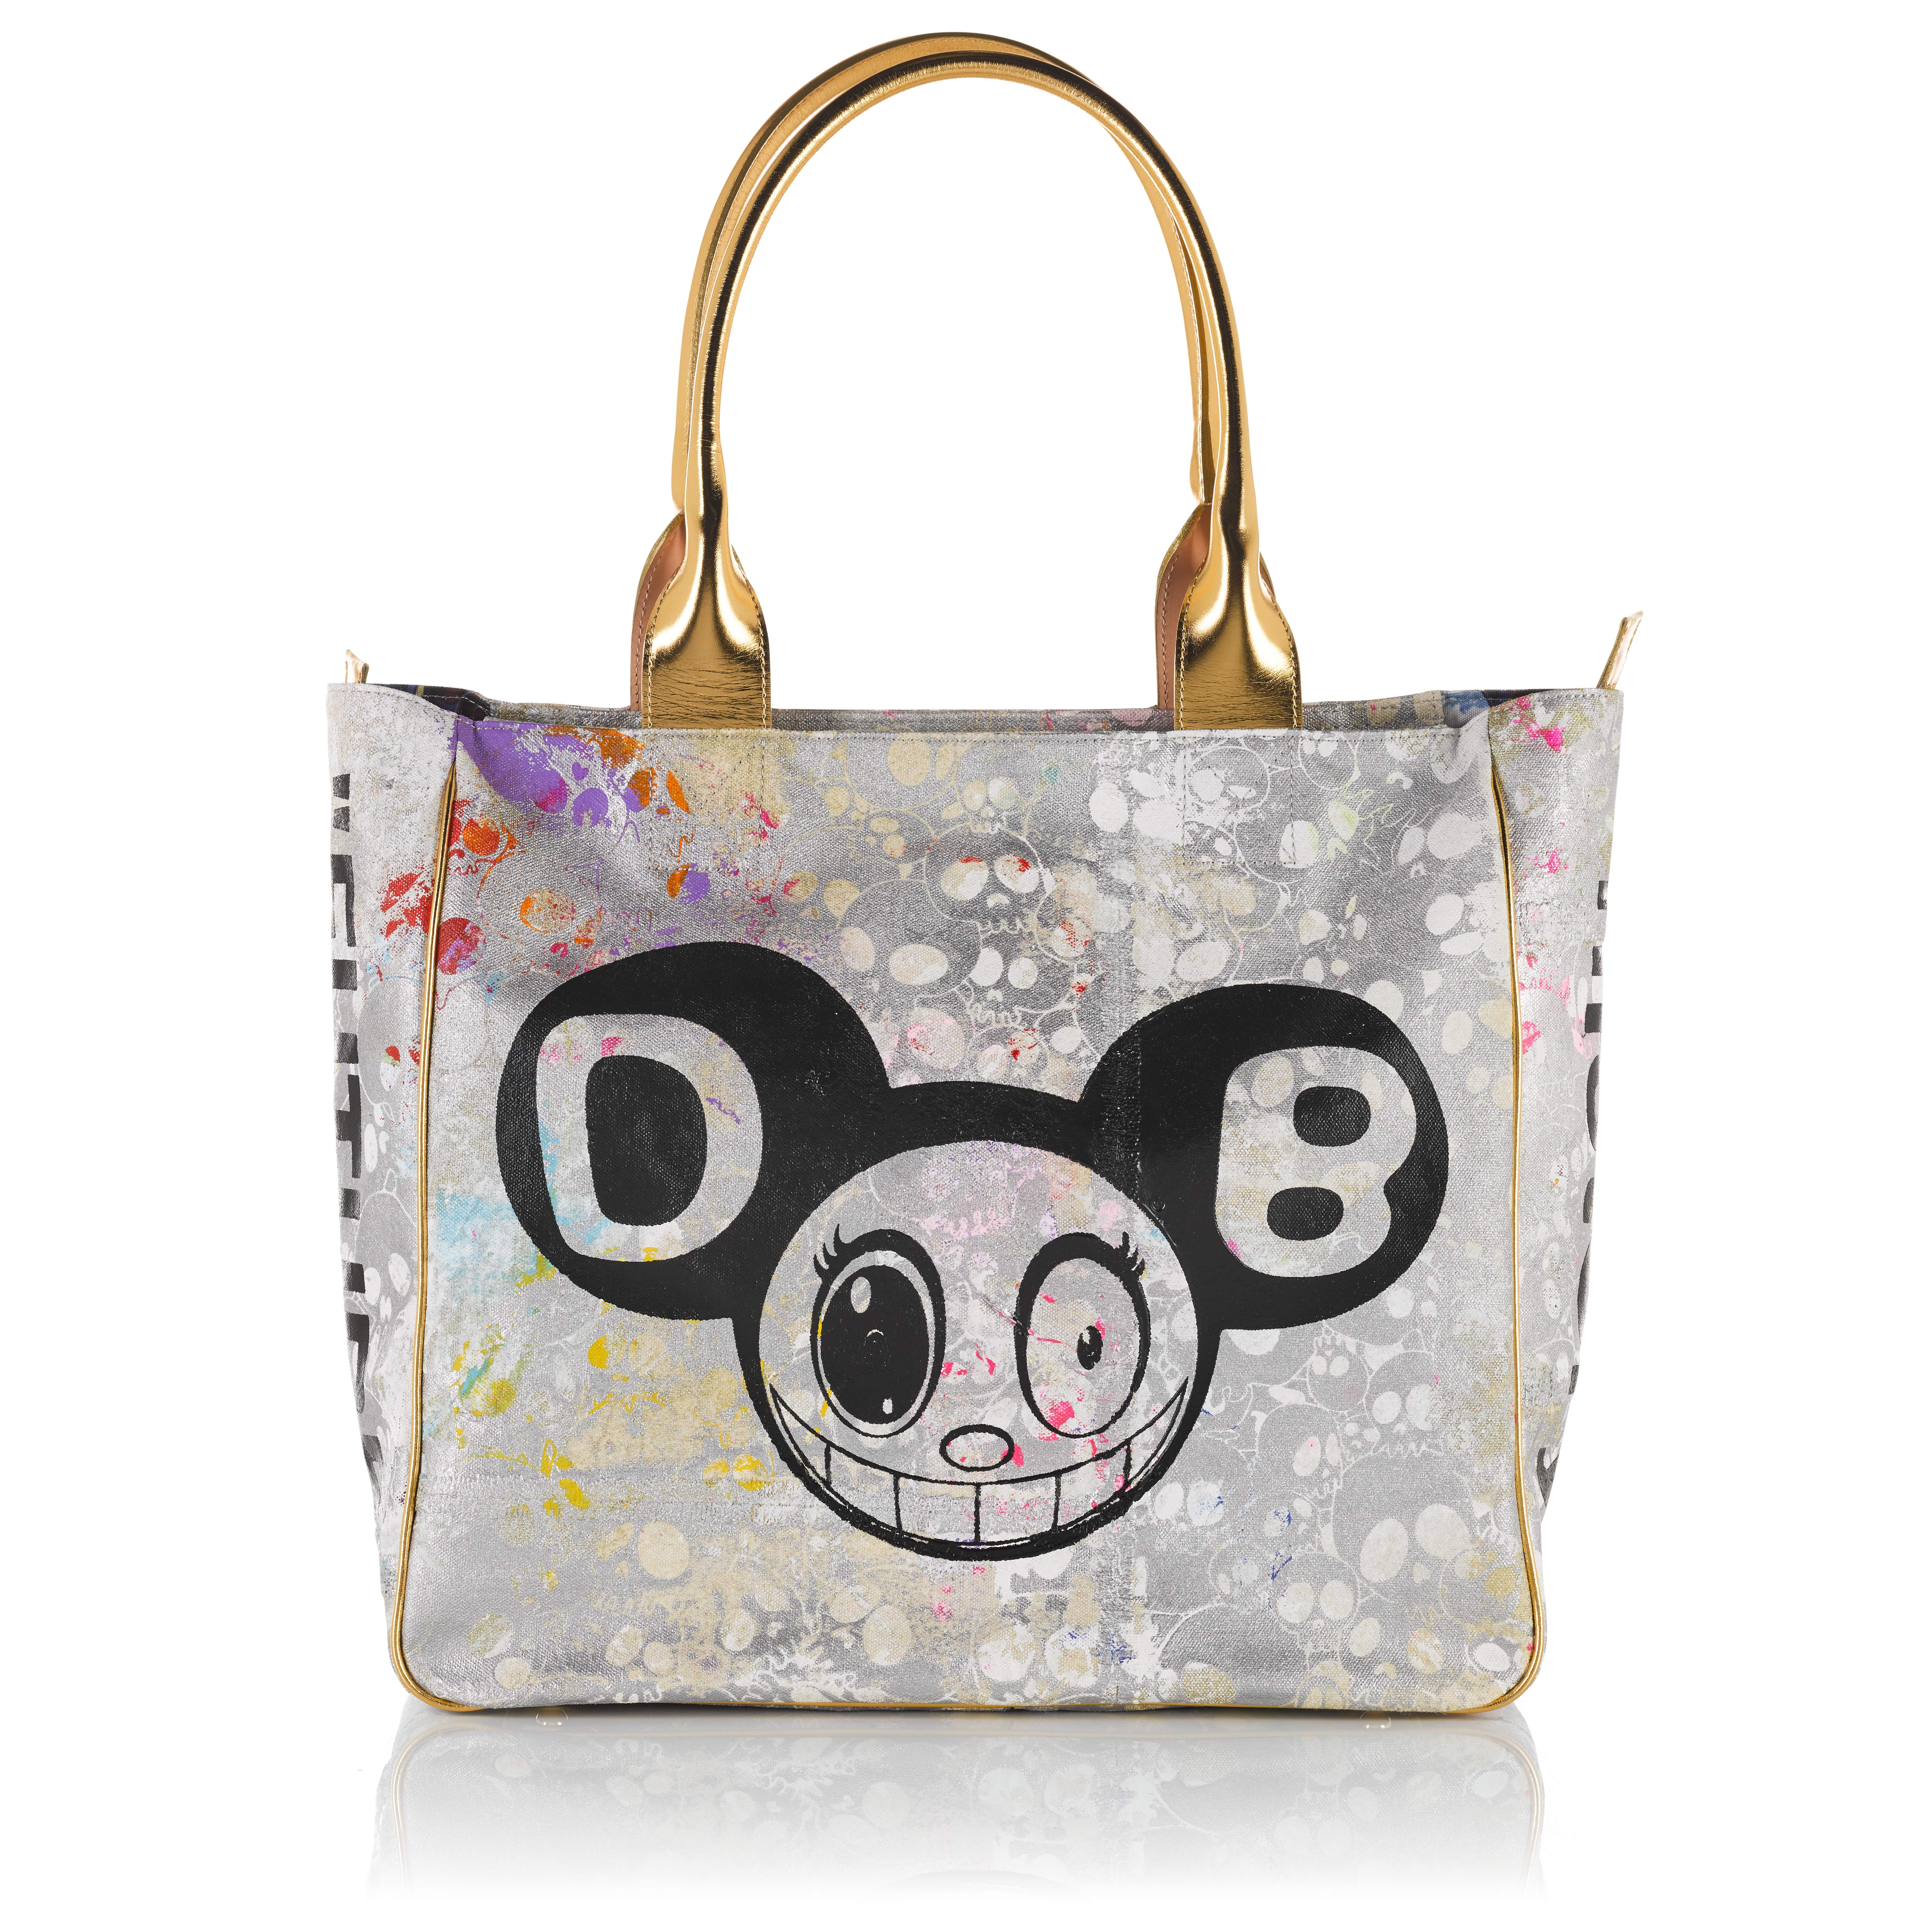 View full screen - View 1 of Lot 3. Gold and Black Tote Bag in Canvas and Leather, 2018, signed by Murakami and Abloh.